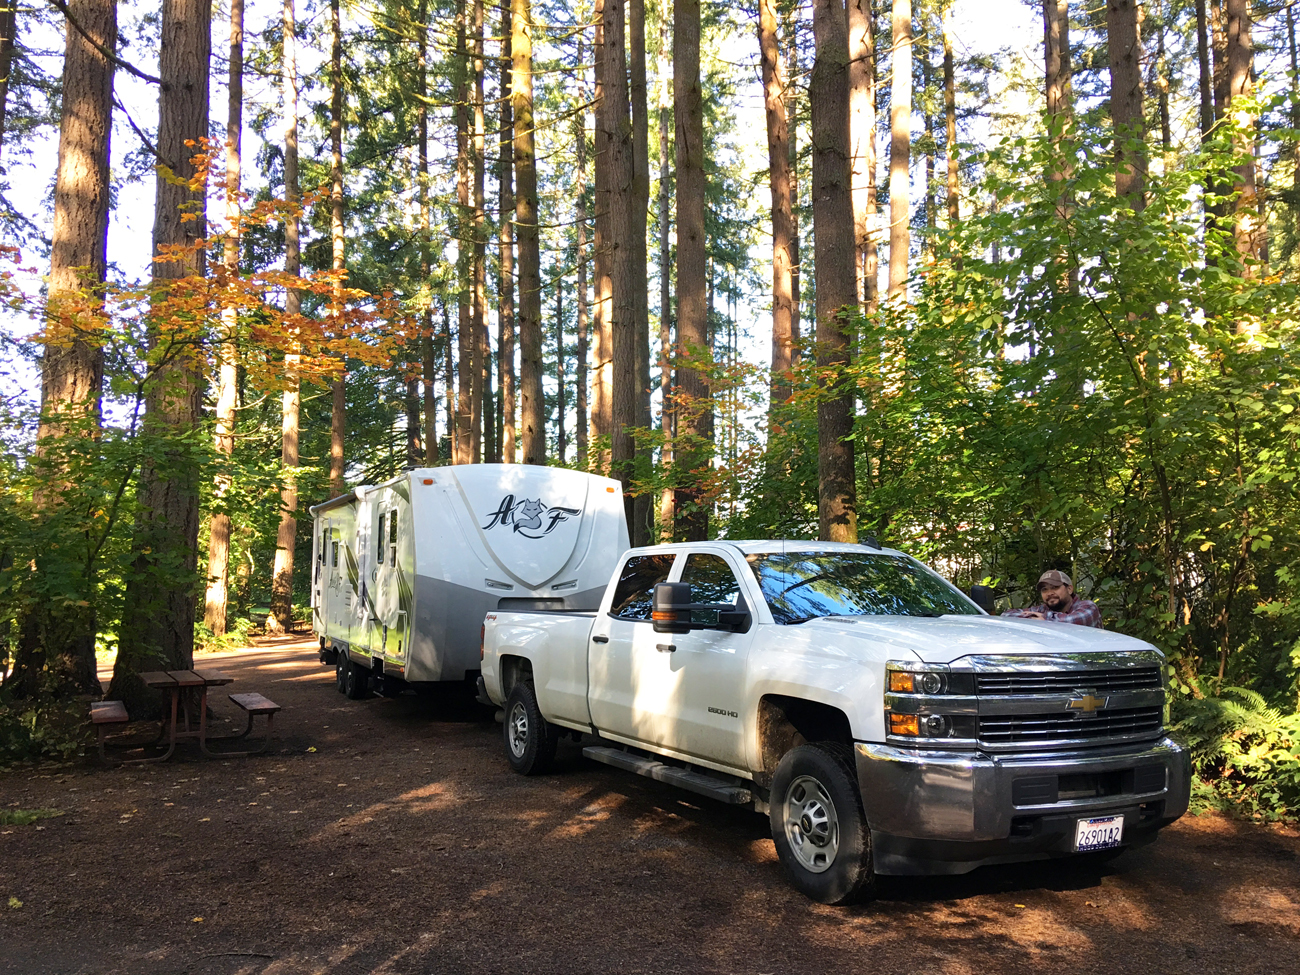 Michael standing with our truck and trailer under tall firs at Big Fir Campground and RV Park